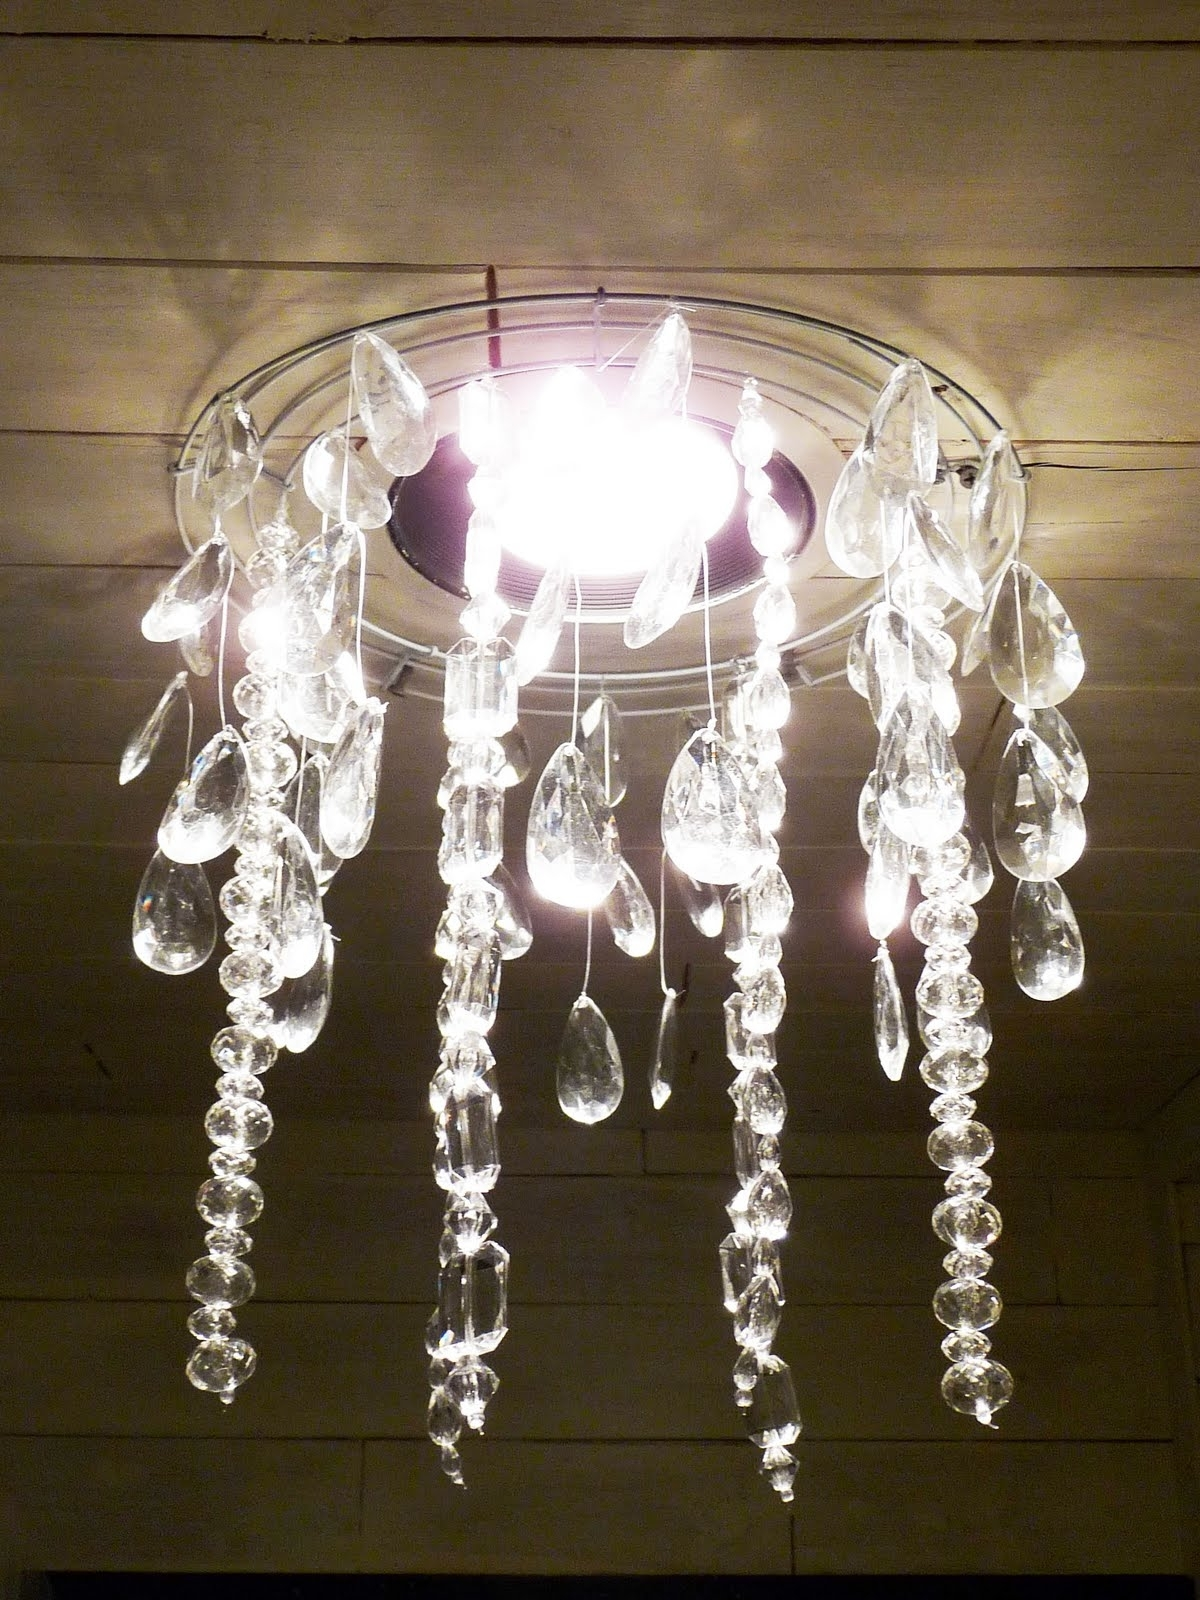 Faux Crystal Chandeliers Pertaining To Trendy The Happy Homebodies: Tutorial: Diy Faux Crystal Chandelier (View 2 of 15)